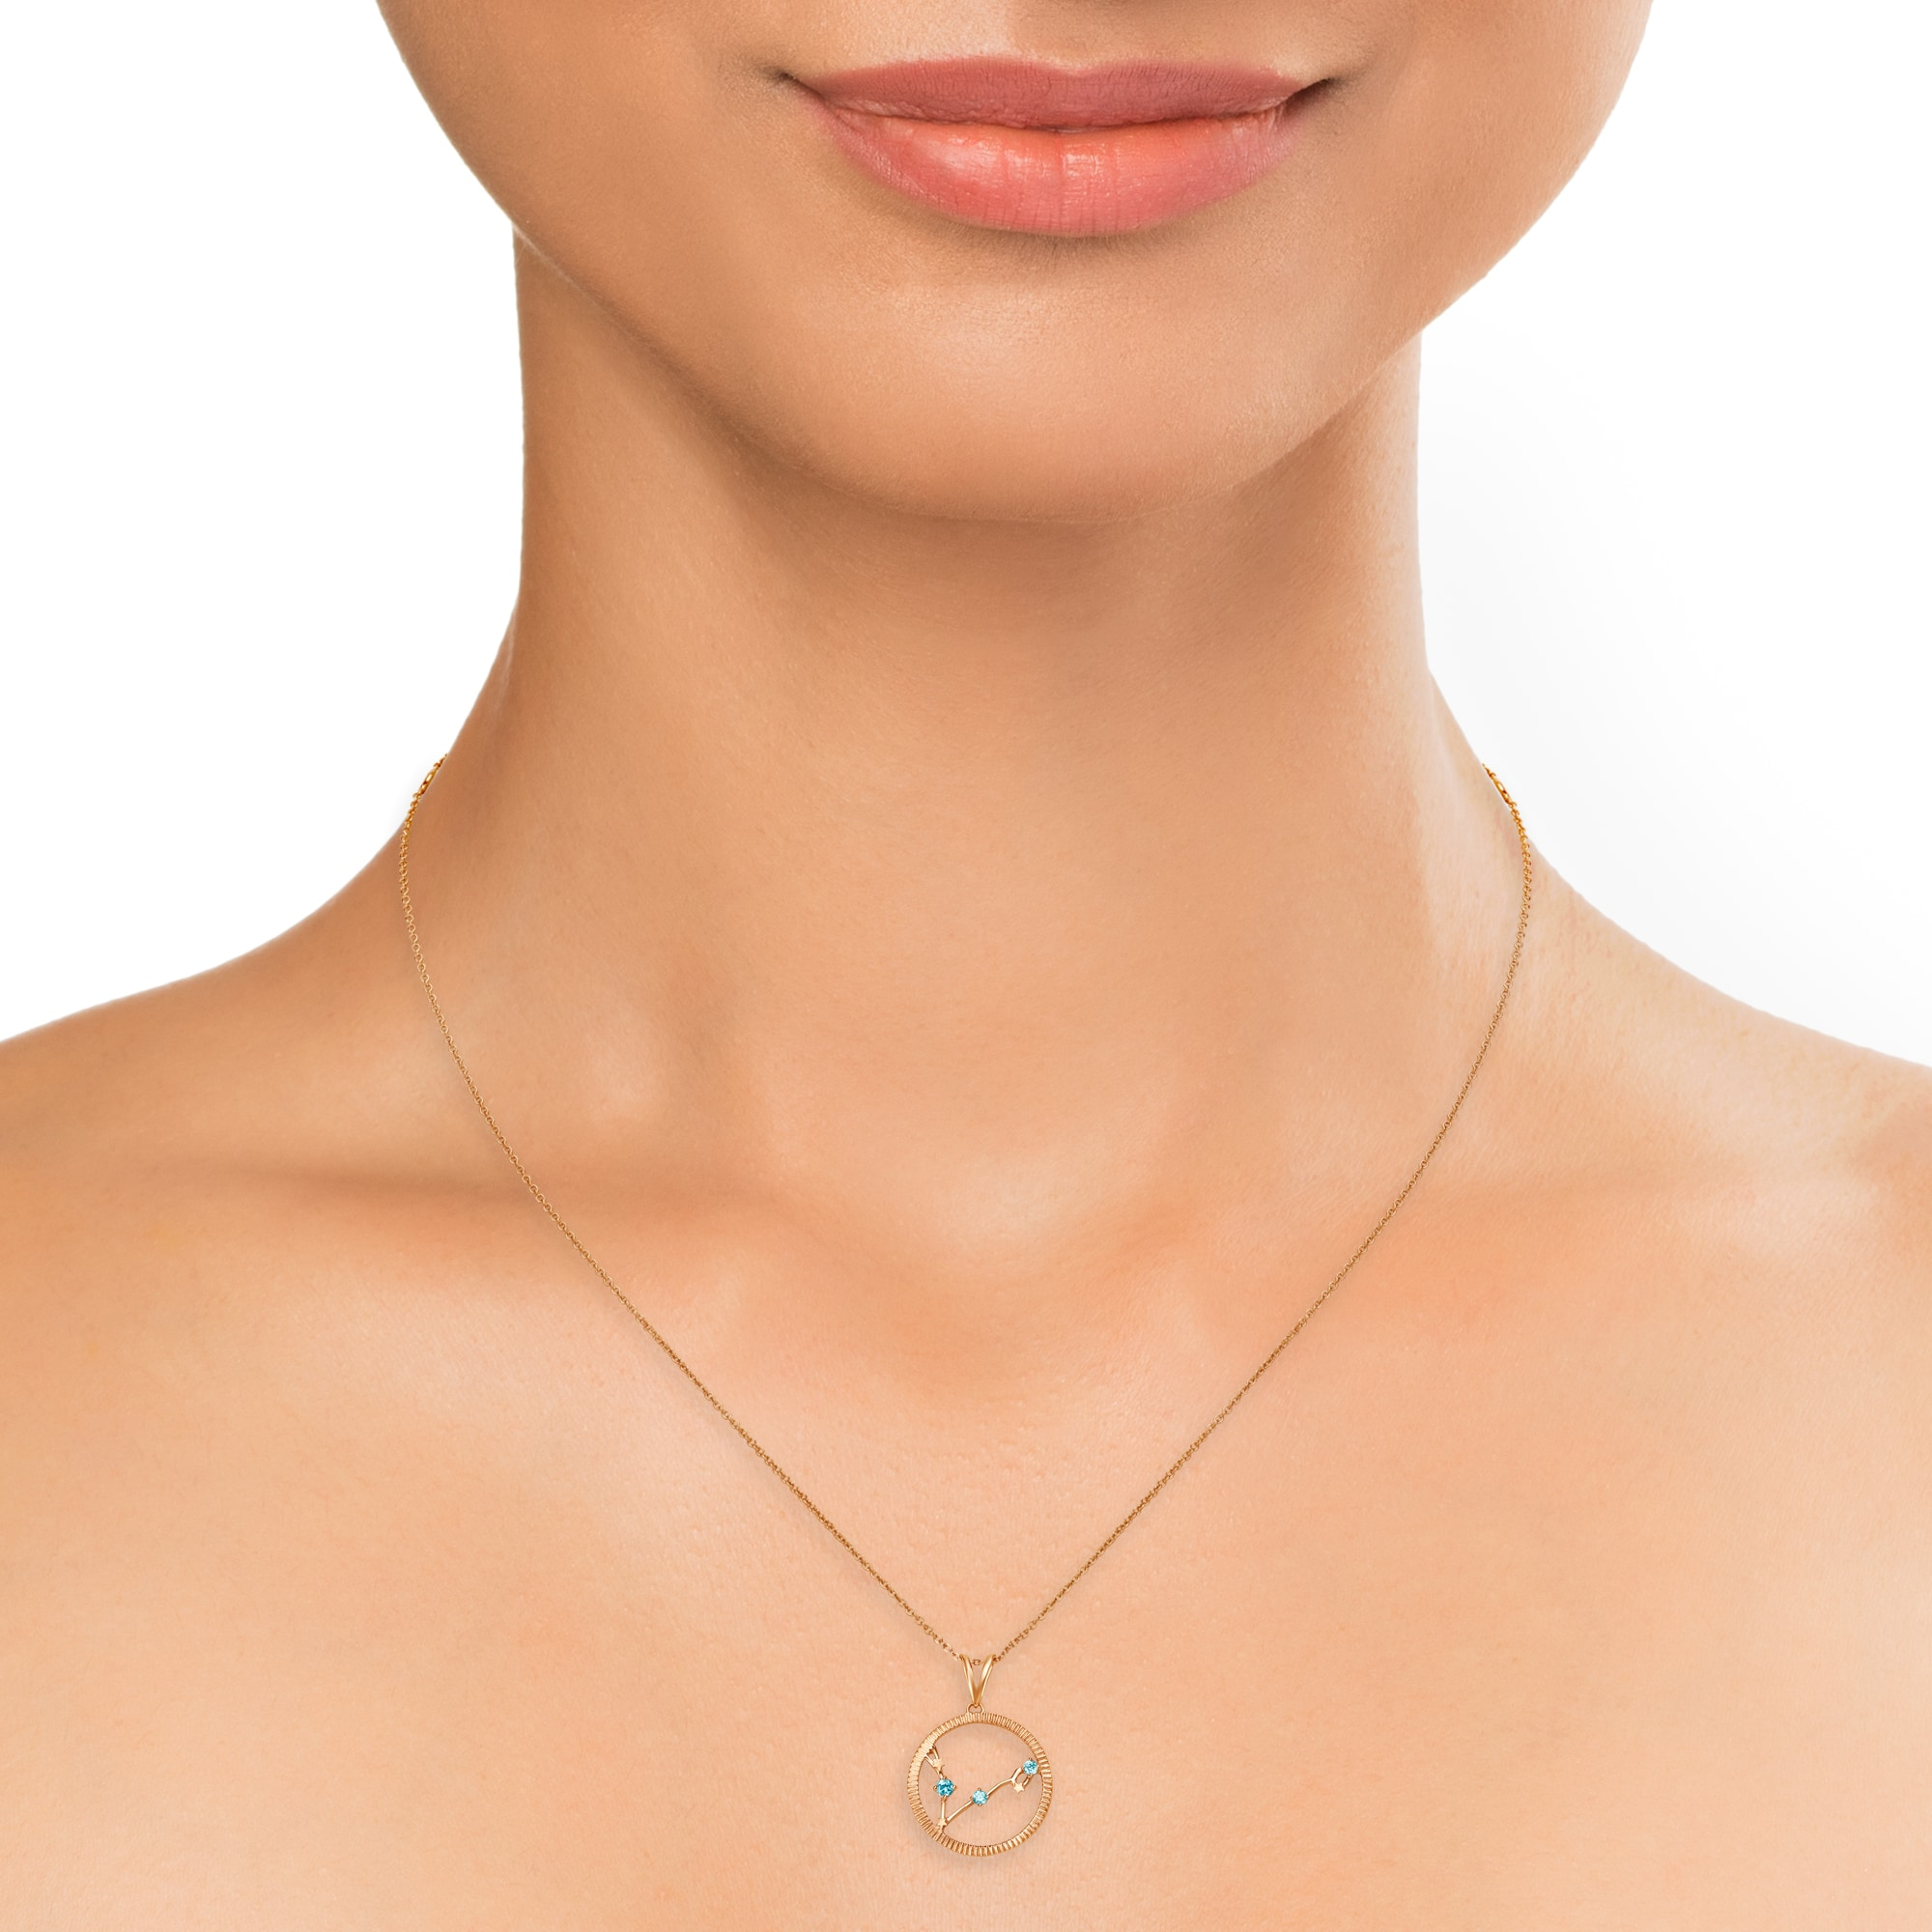 724c5870b3569 Mia by Tanishq Pisces 14KT Rose Gold Pendant and Chain